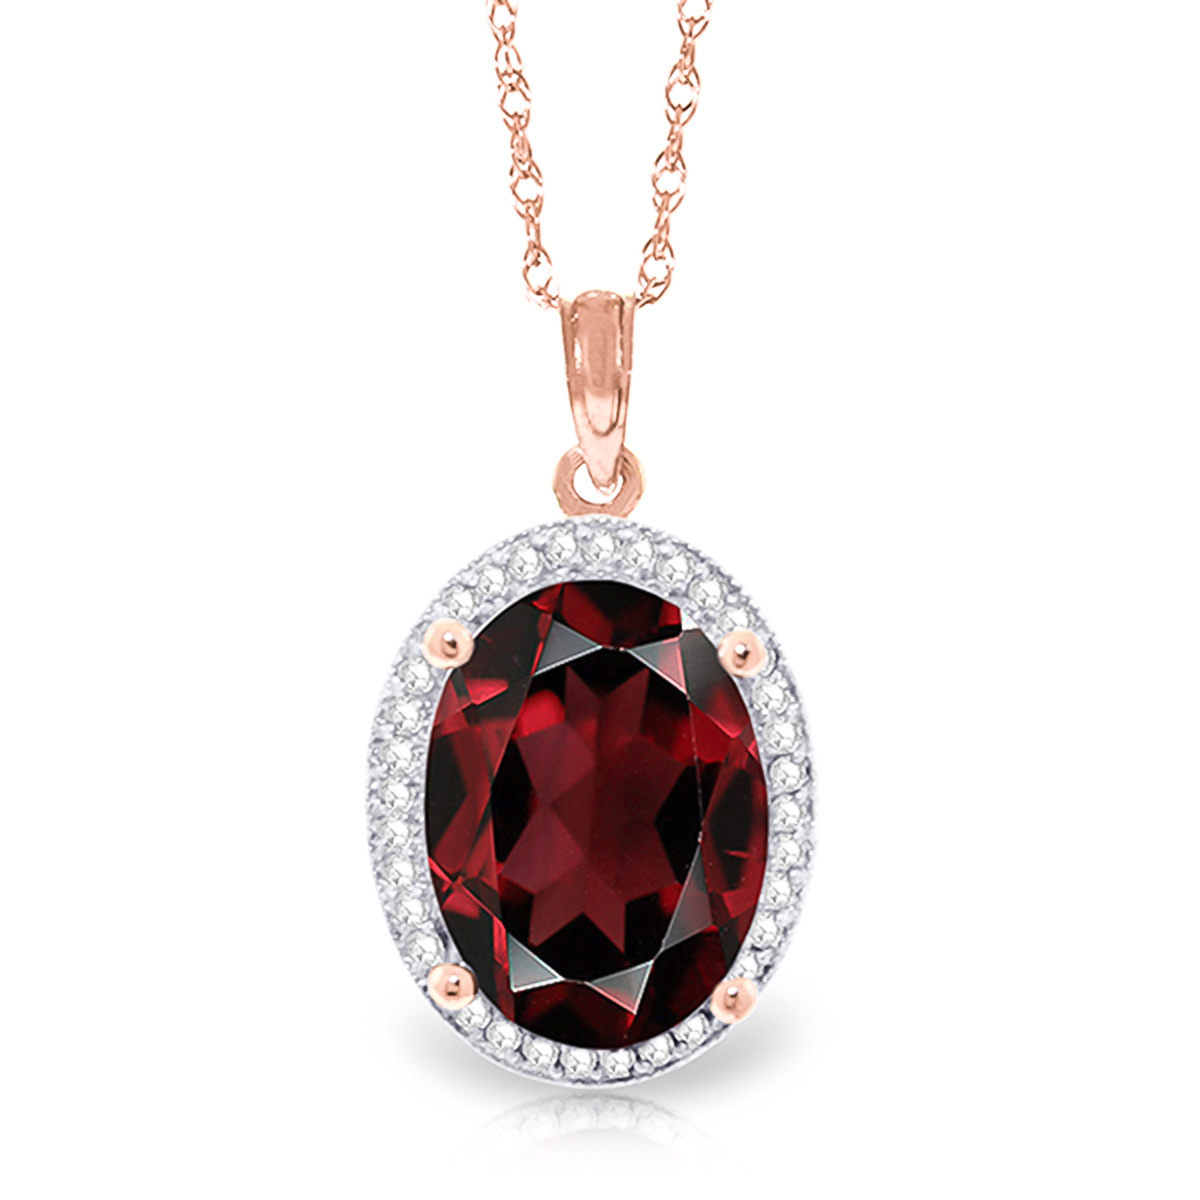 Bargain Garnet and Diamond Halo Pendant Necklace 6.05ct in 9ct Rose Gold Stockists